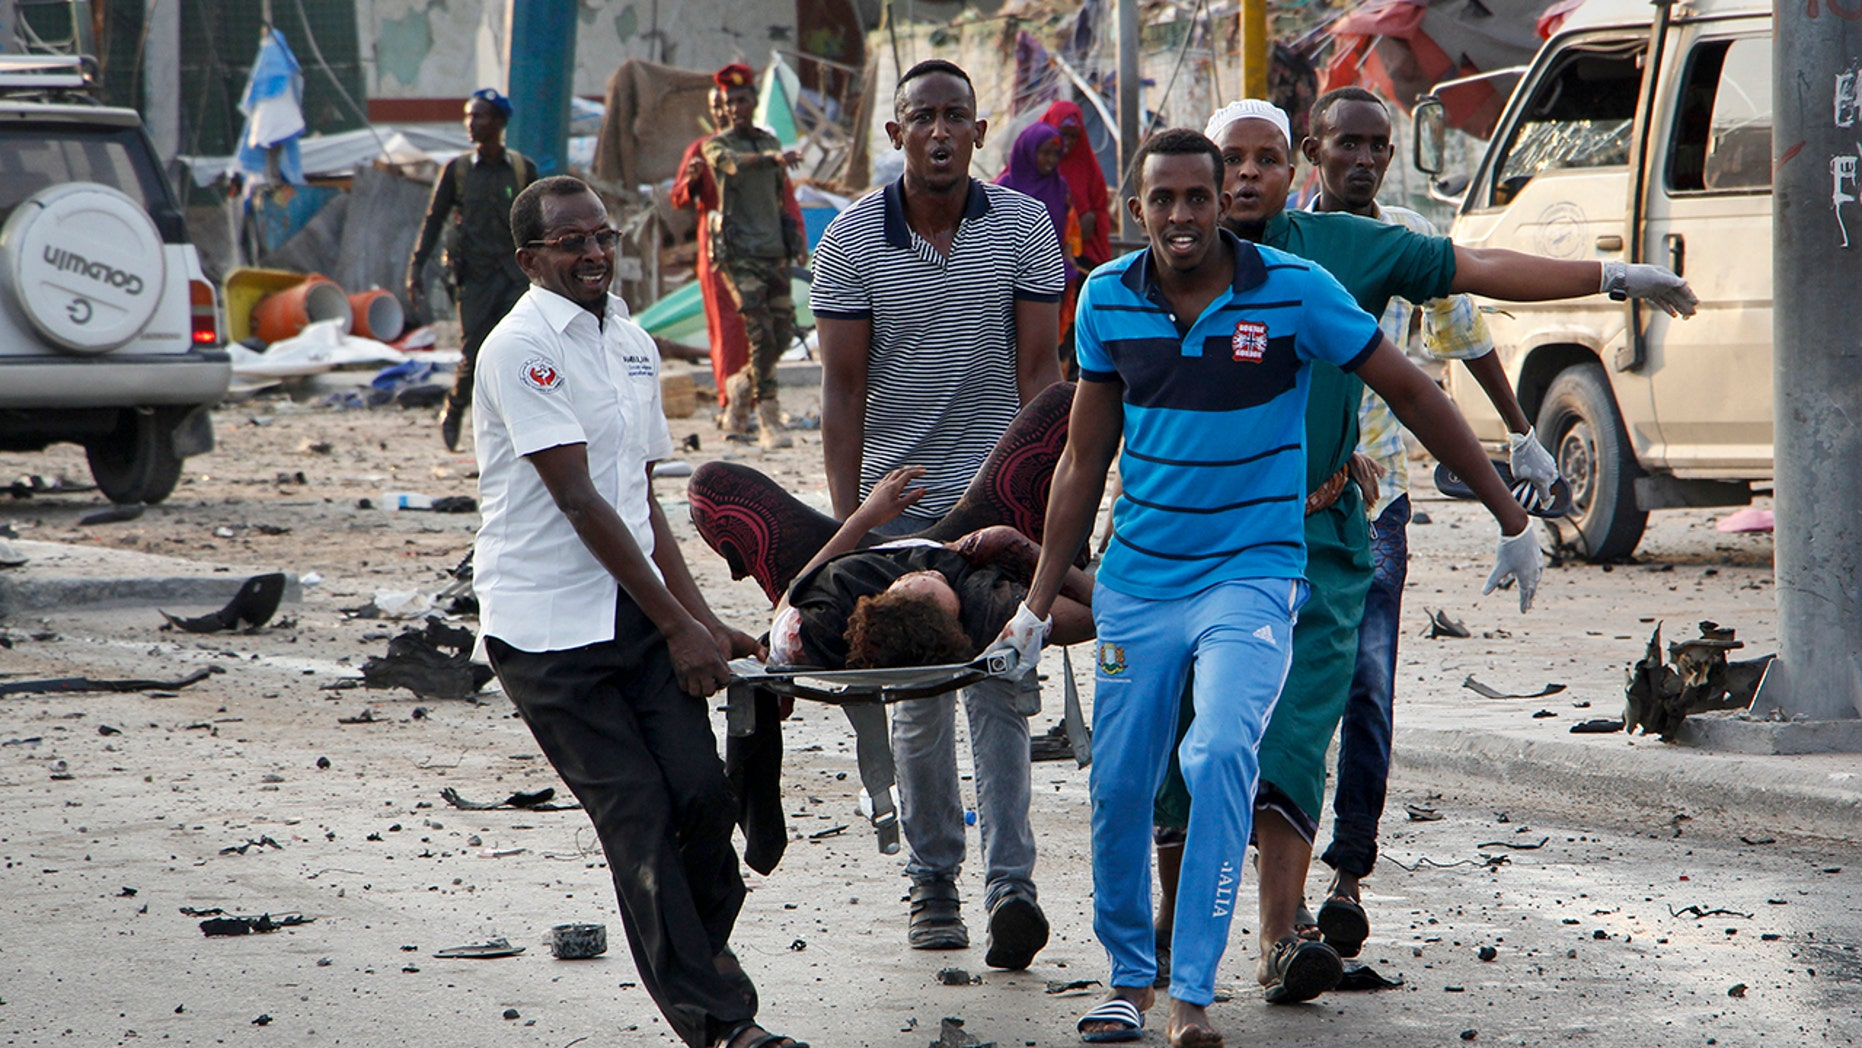 Several Killed, 45 wounded in Somalia car-bomb attacks